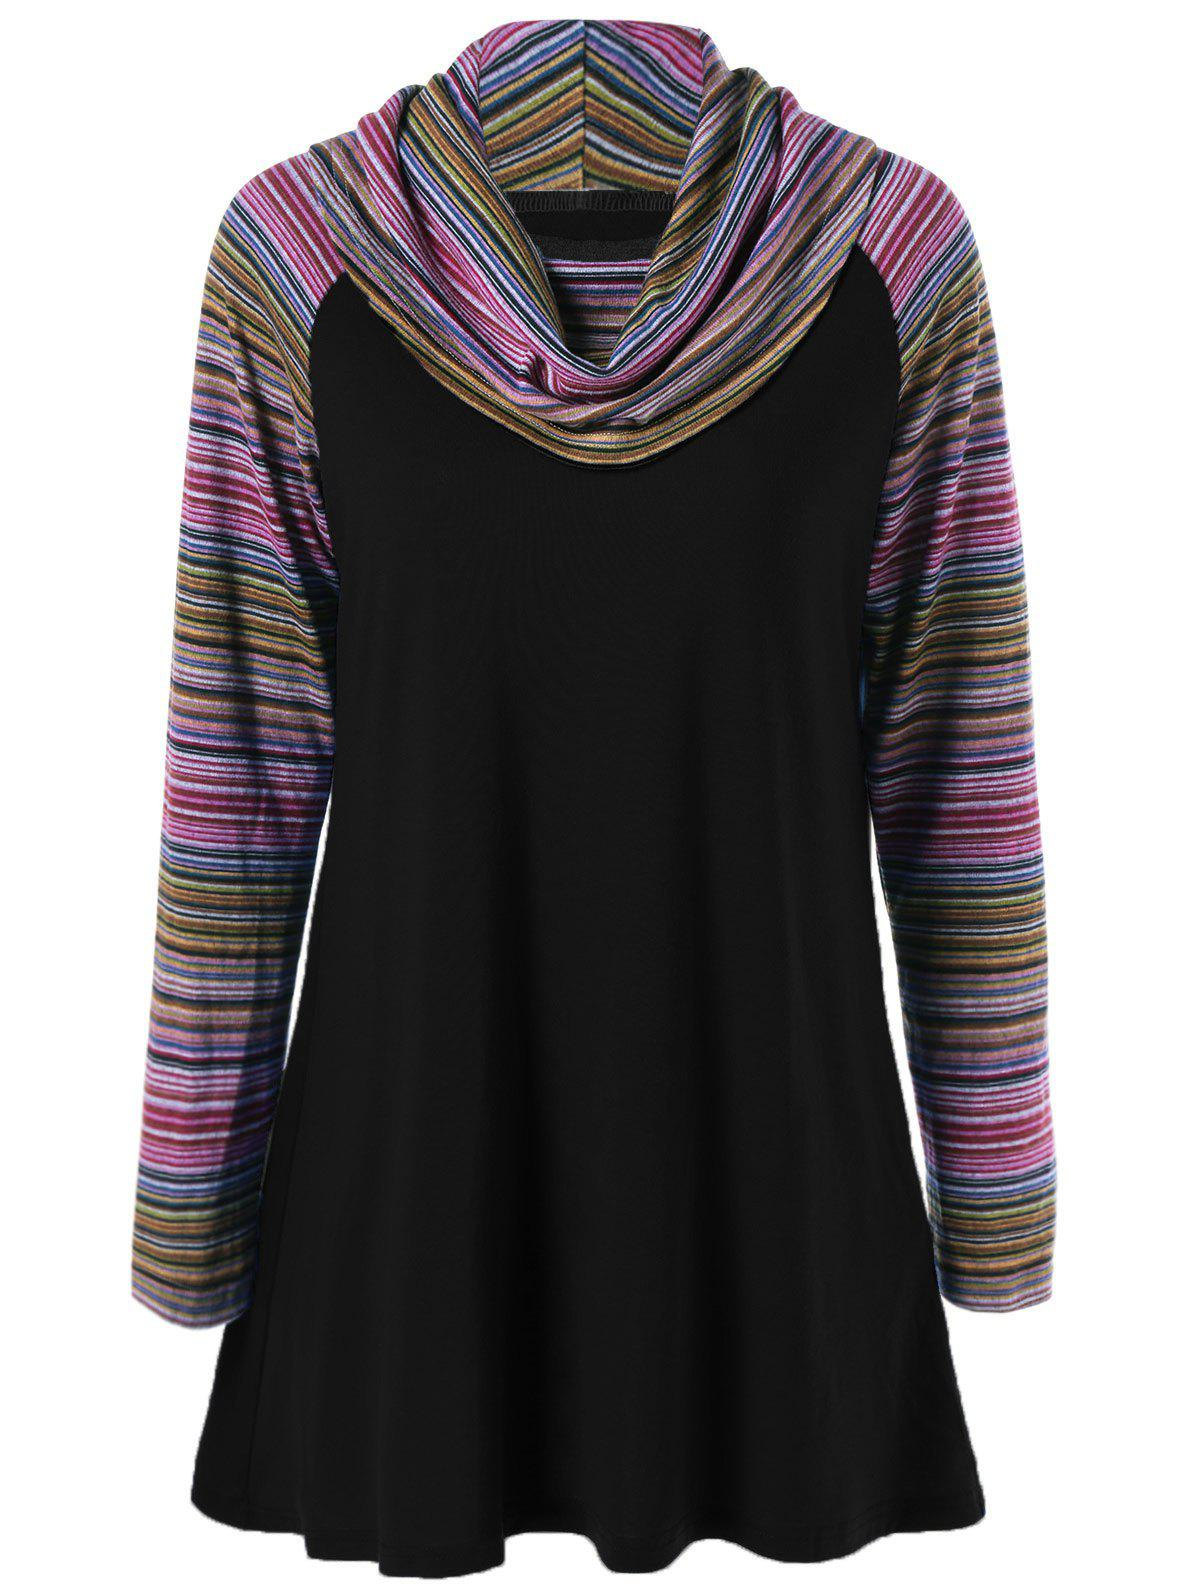 Cowl Neck Colorful Striped T-ShirtWOMEN<br><br>Size: M; Color: BLACK; Material: Polyester; Sleeve Length: Full; Collar: Cowl Neck; Style: Streetwear; Pattern Type: Striped; Season: Fall,Spring,Winter; Weight: 0.370kg; Package Contents: 1 x T-Shirt;